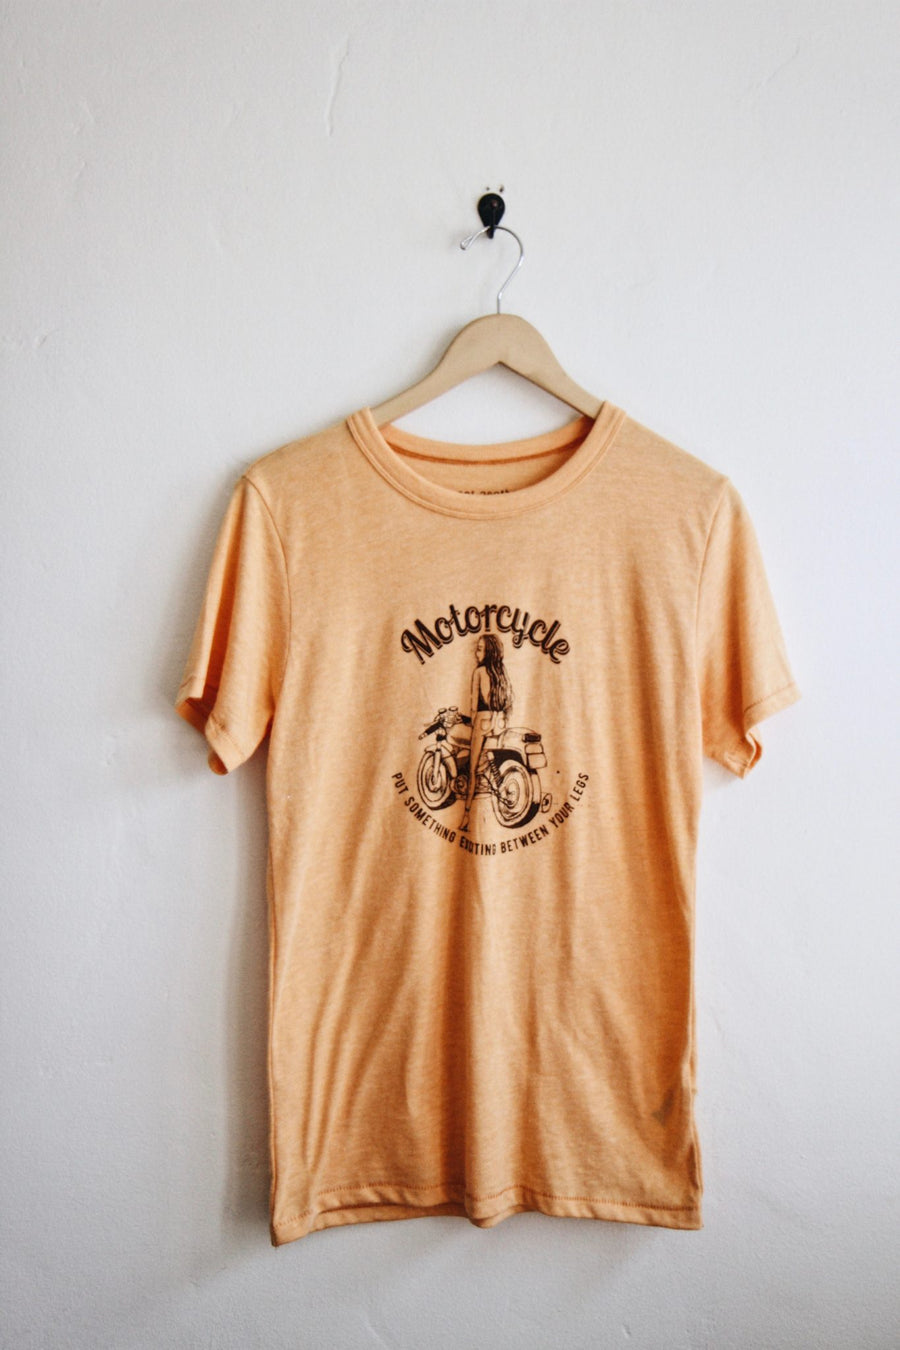 Motorcycle Tee by Not Another Label